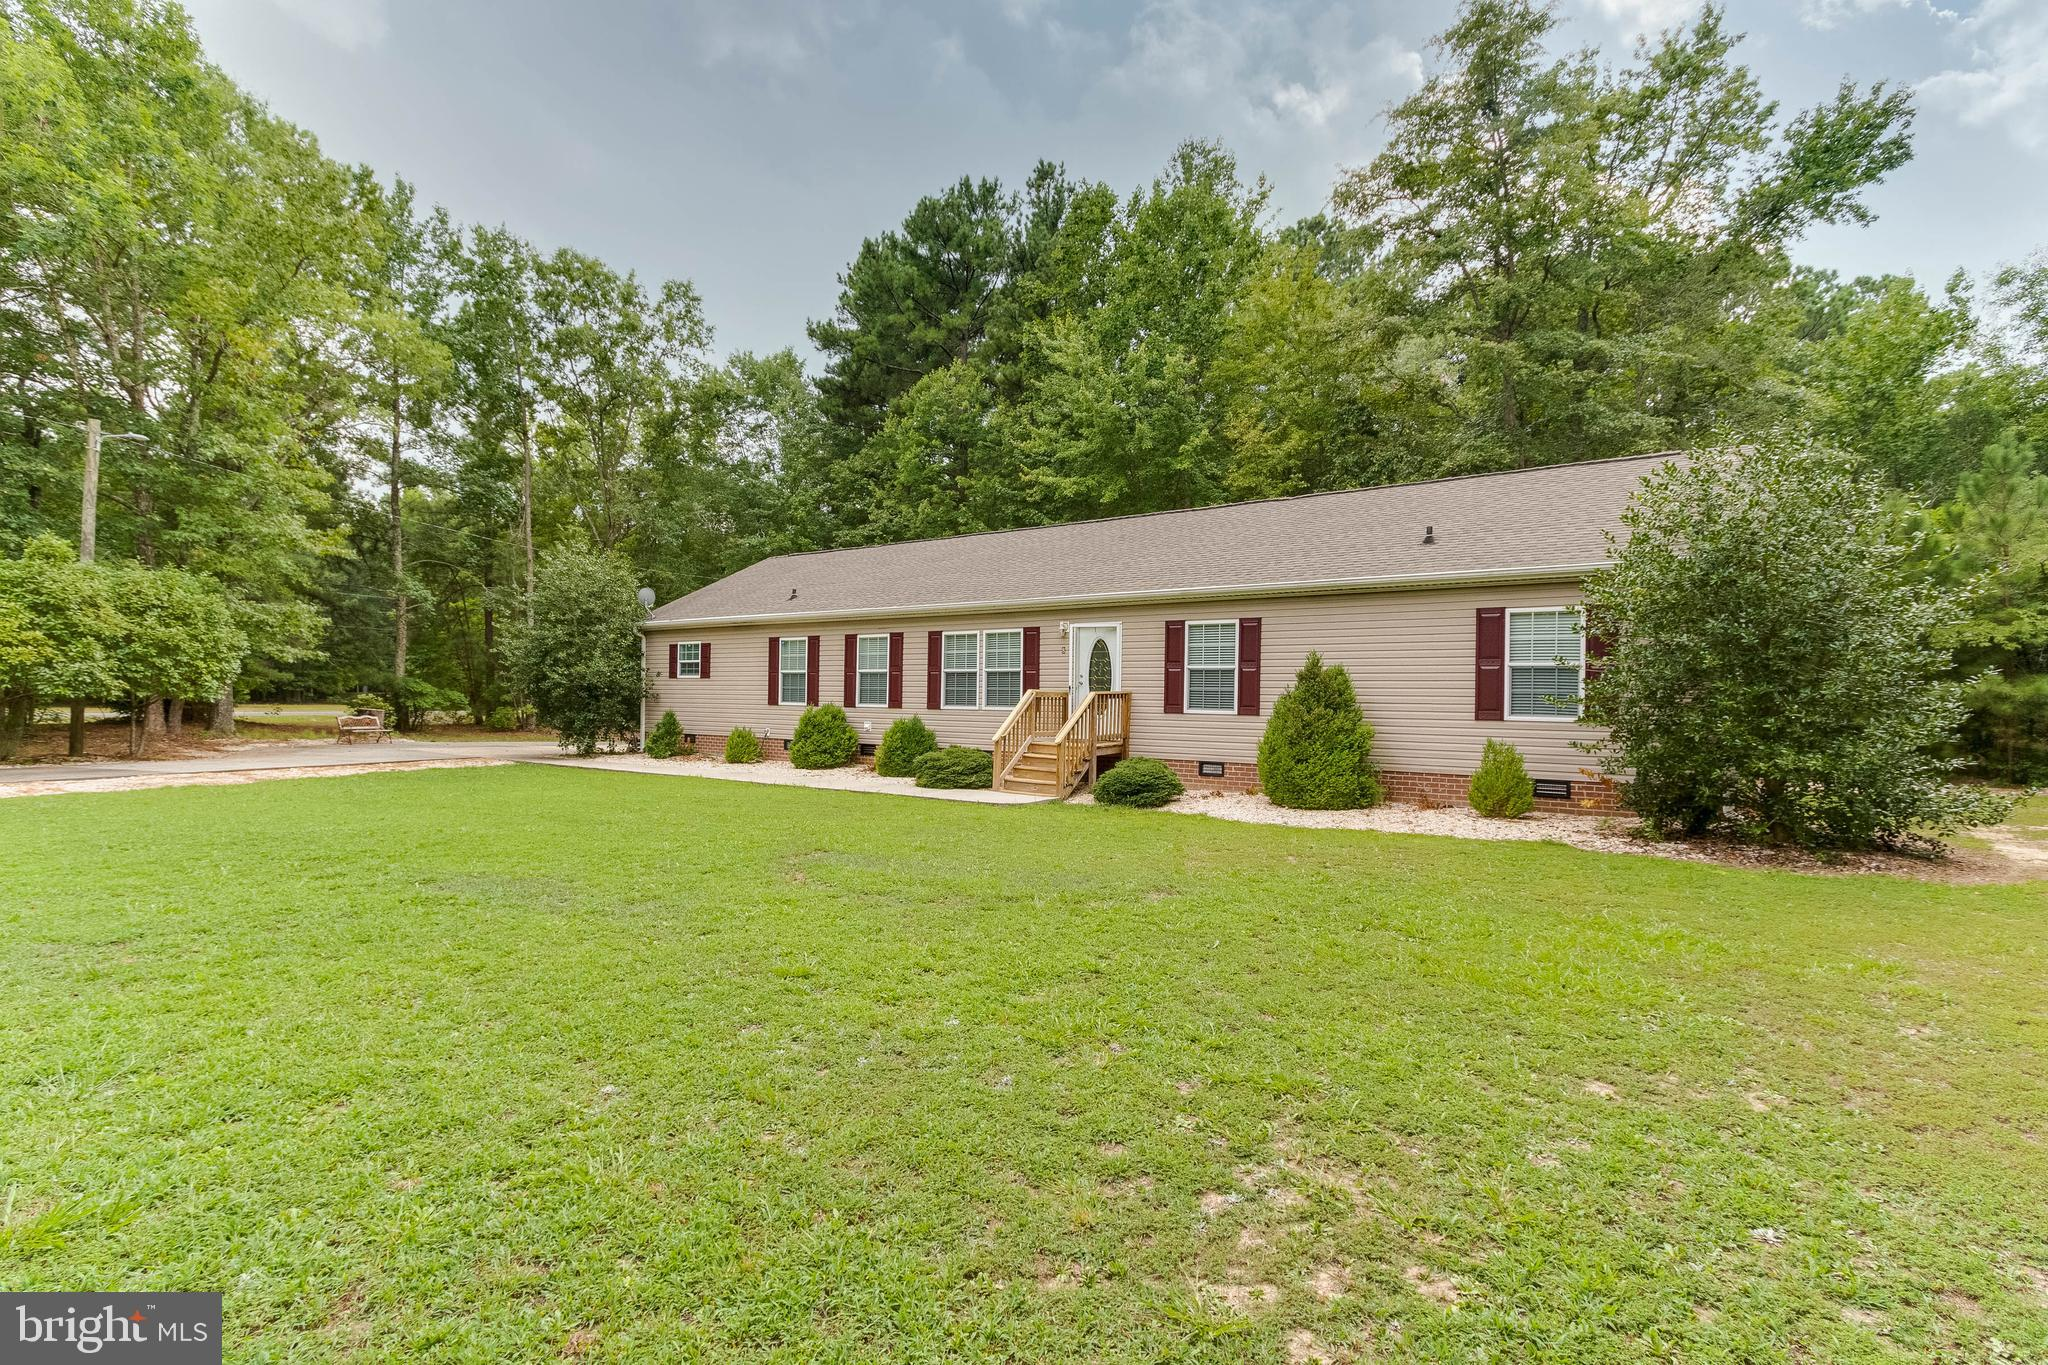 8 Portal Drive, Montross, VA 22520 | RE/MAX Gateway